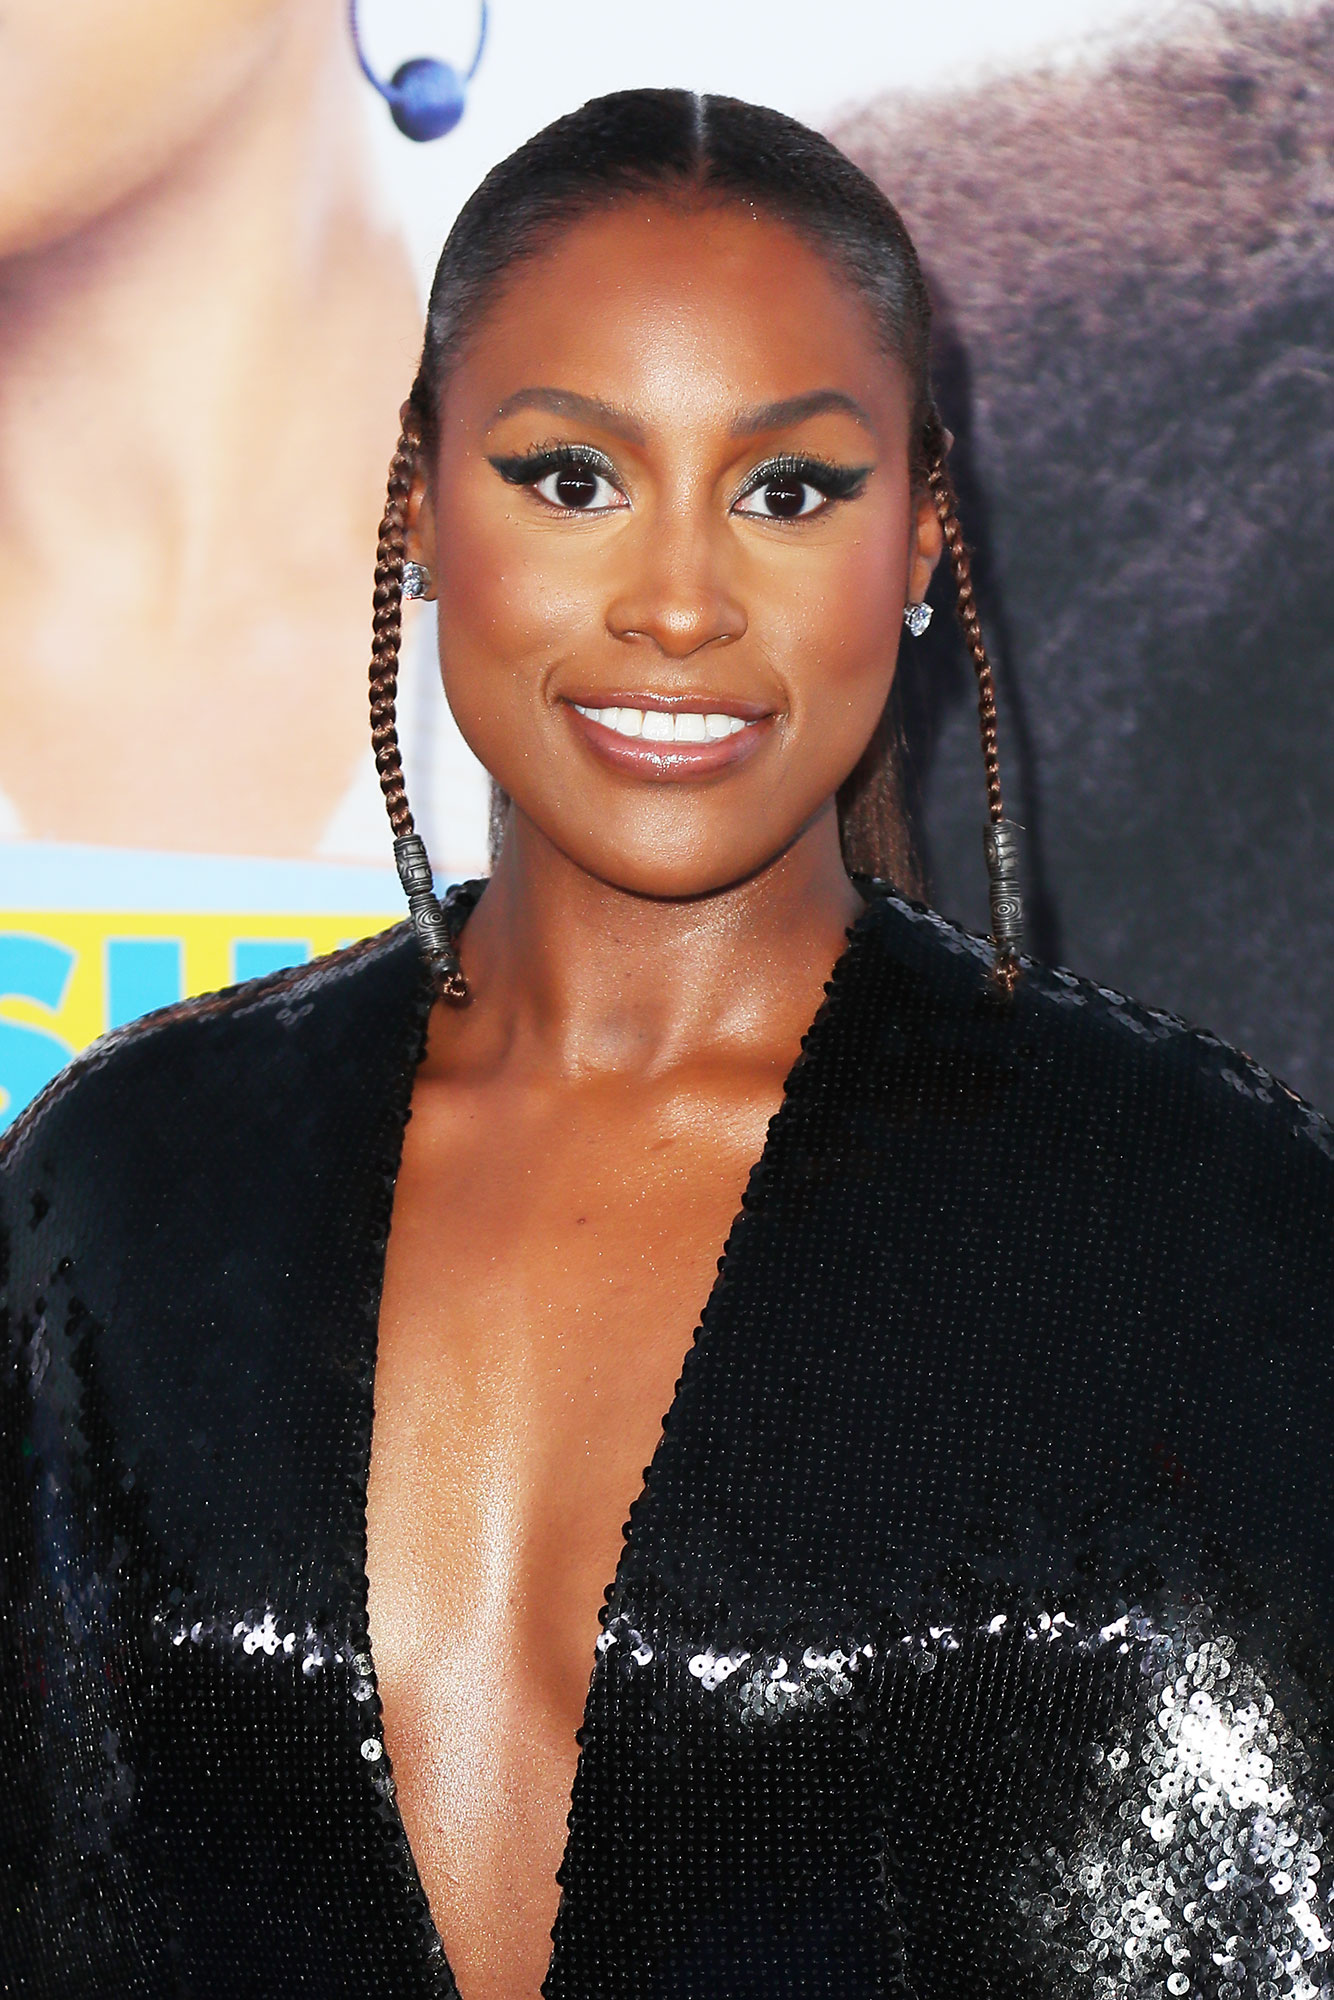 Issa Rae's Petite Plaits - Braids and festival season are a match made in beauty heaven, and we love the dual plaits celeb hairstylist Felicia Leatherwood created for the Little star at the film's premiere on Monday, April 8.